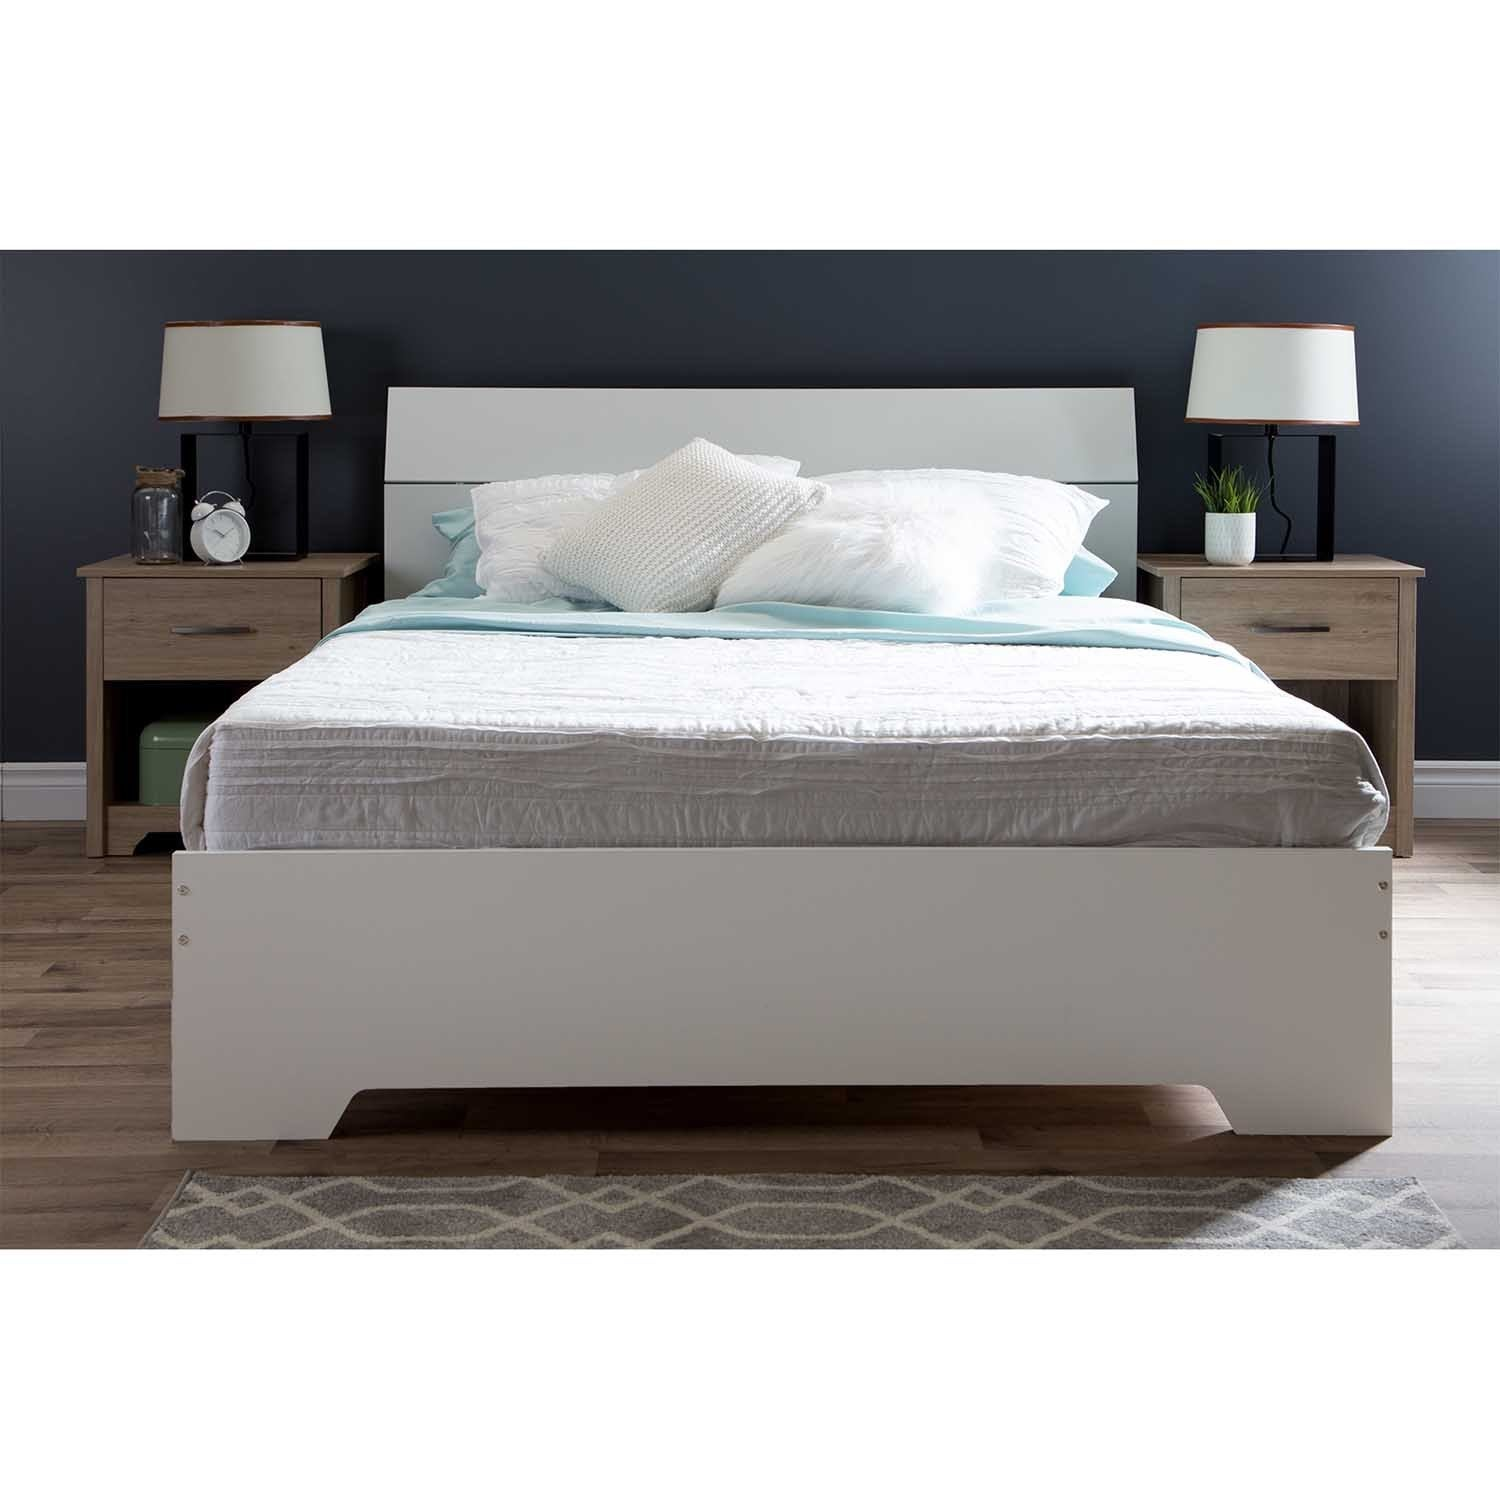 South Shore Queen Platform Bed with Headboard (Pure White)